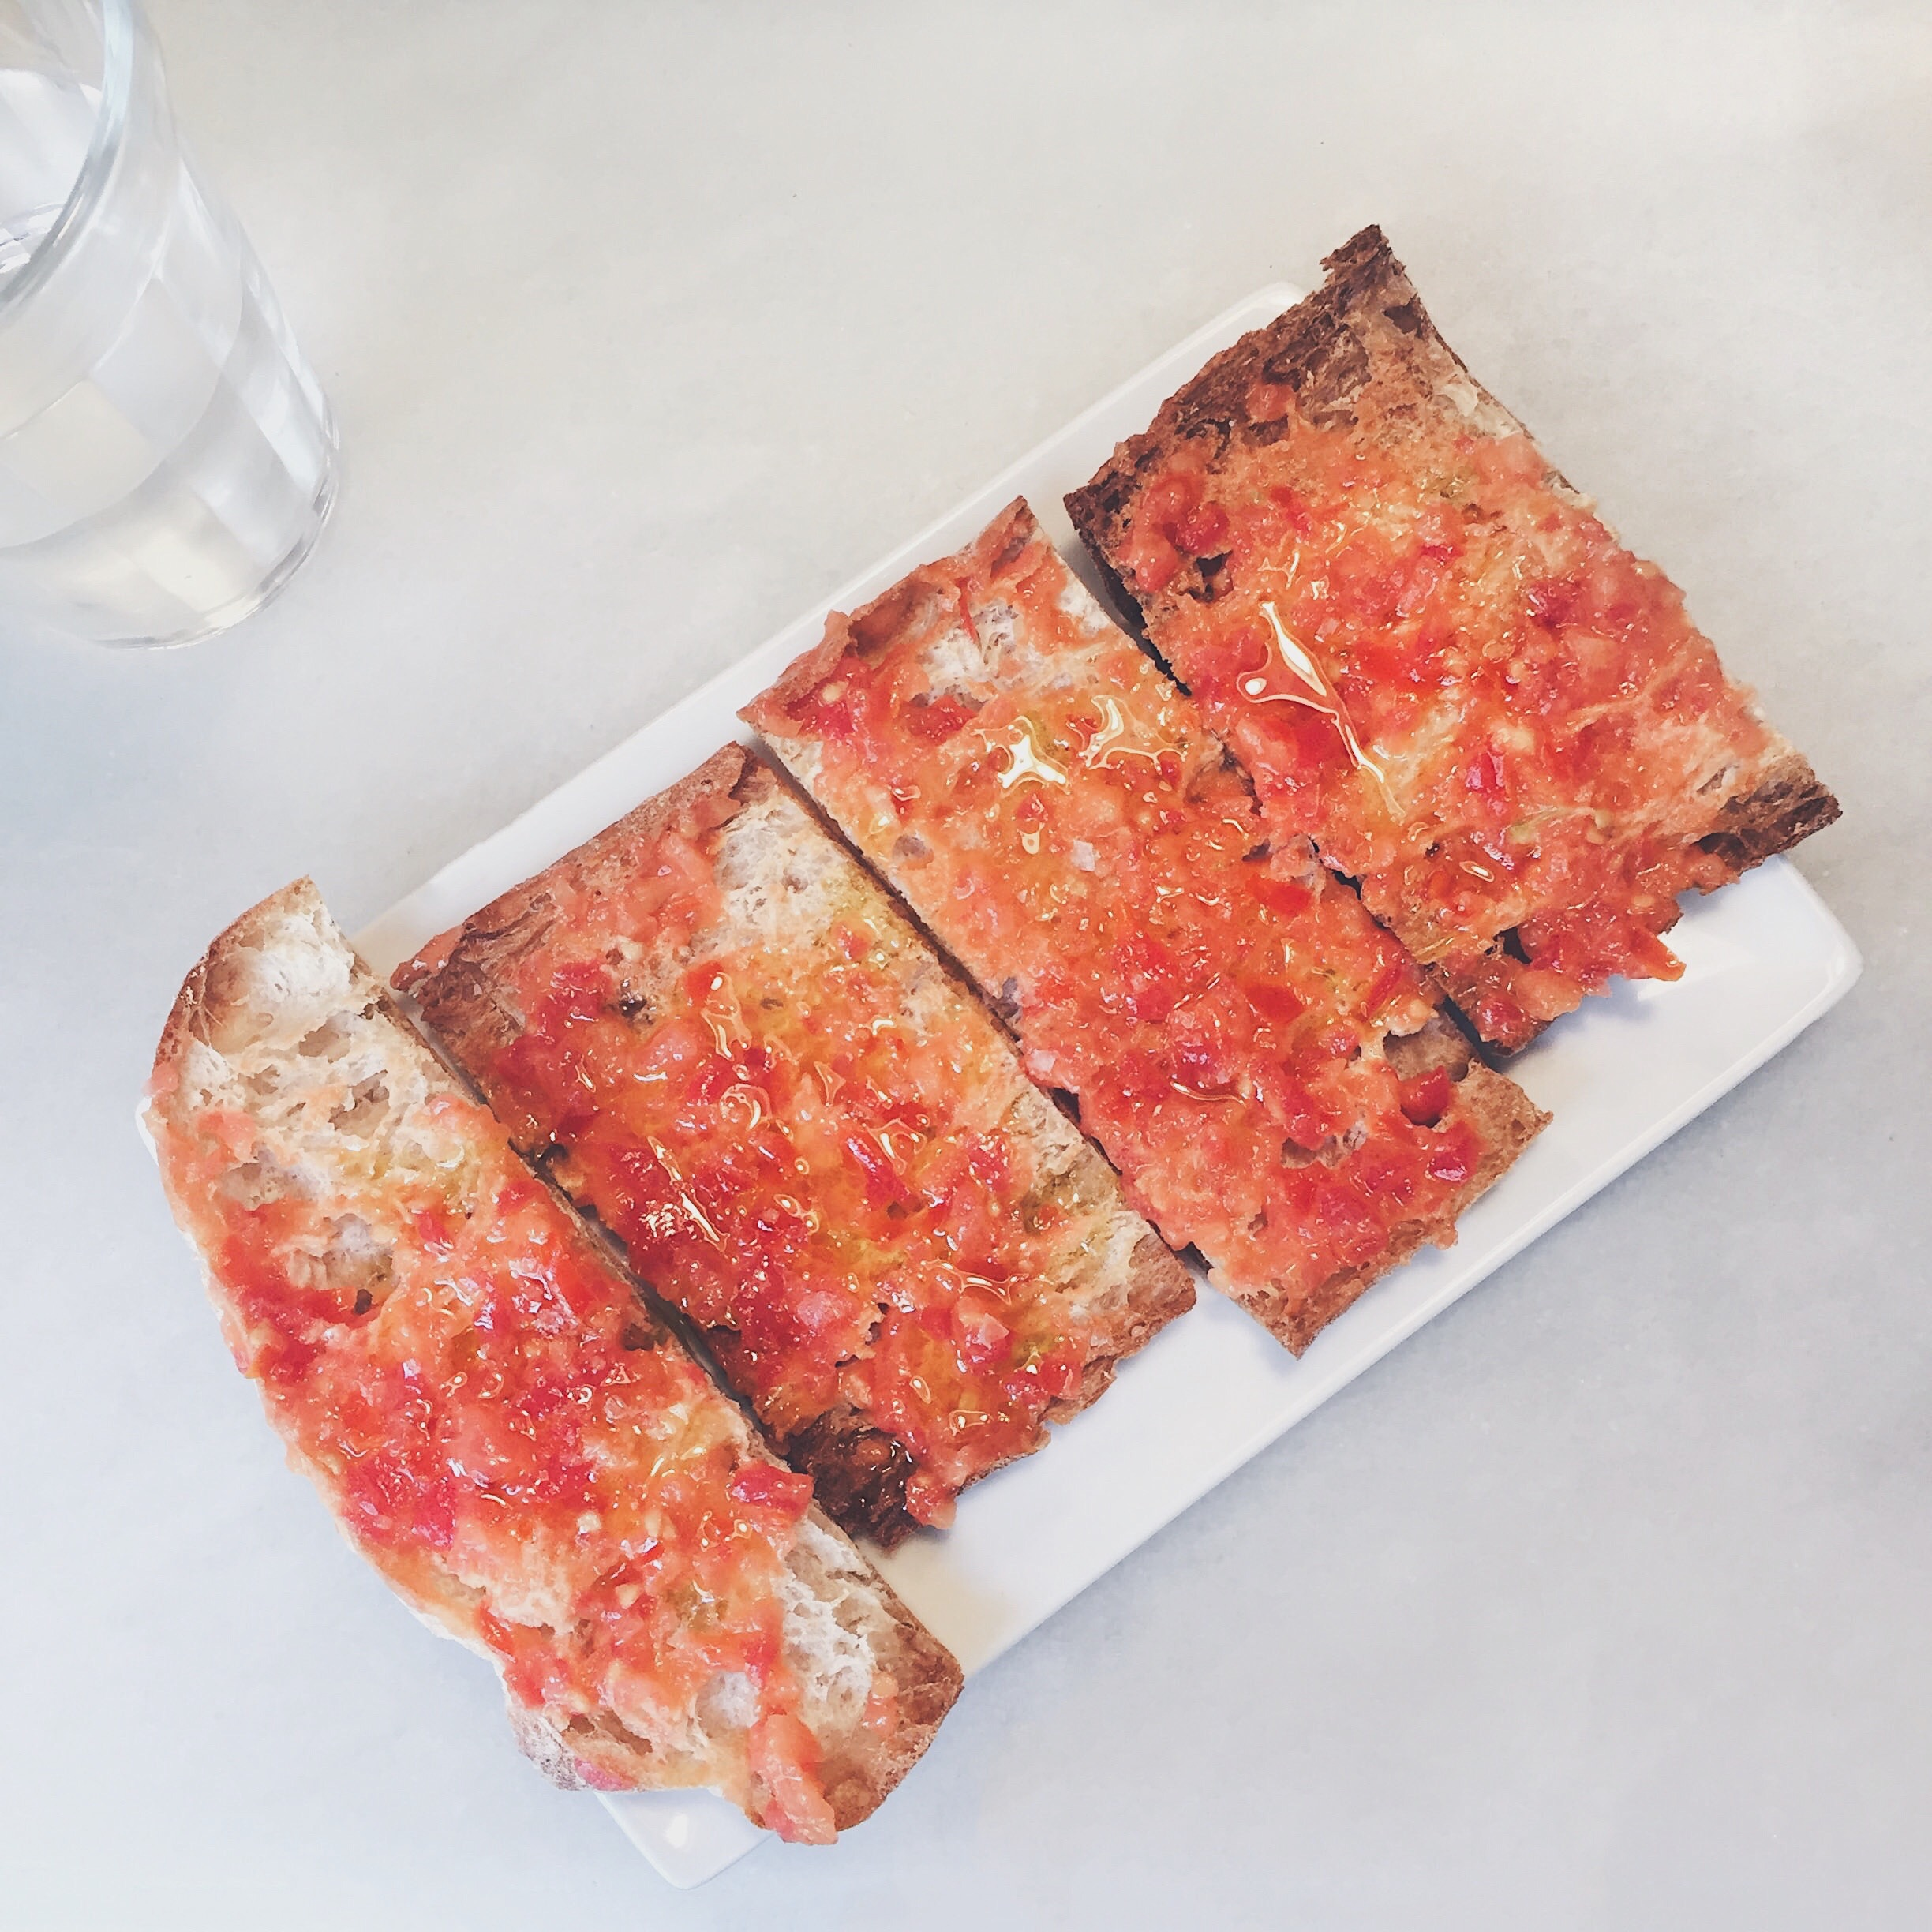 BarBut | Catalan crispy bread with tomato.